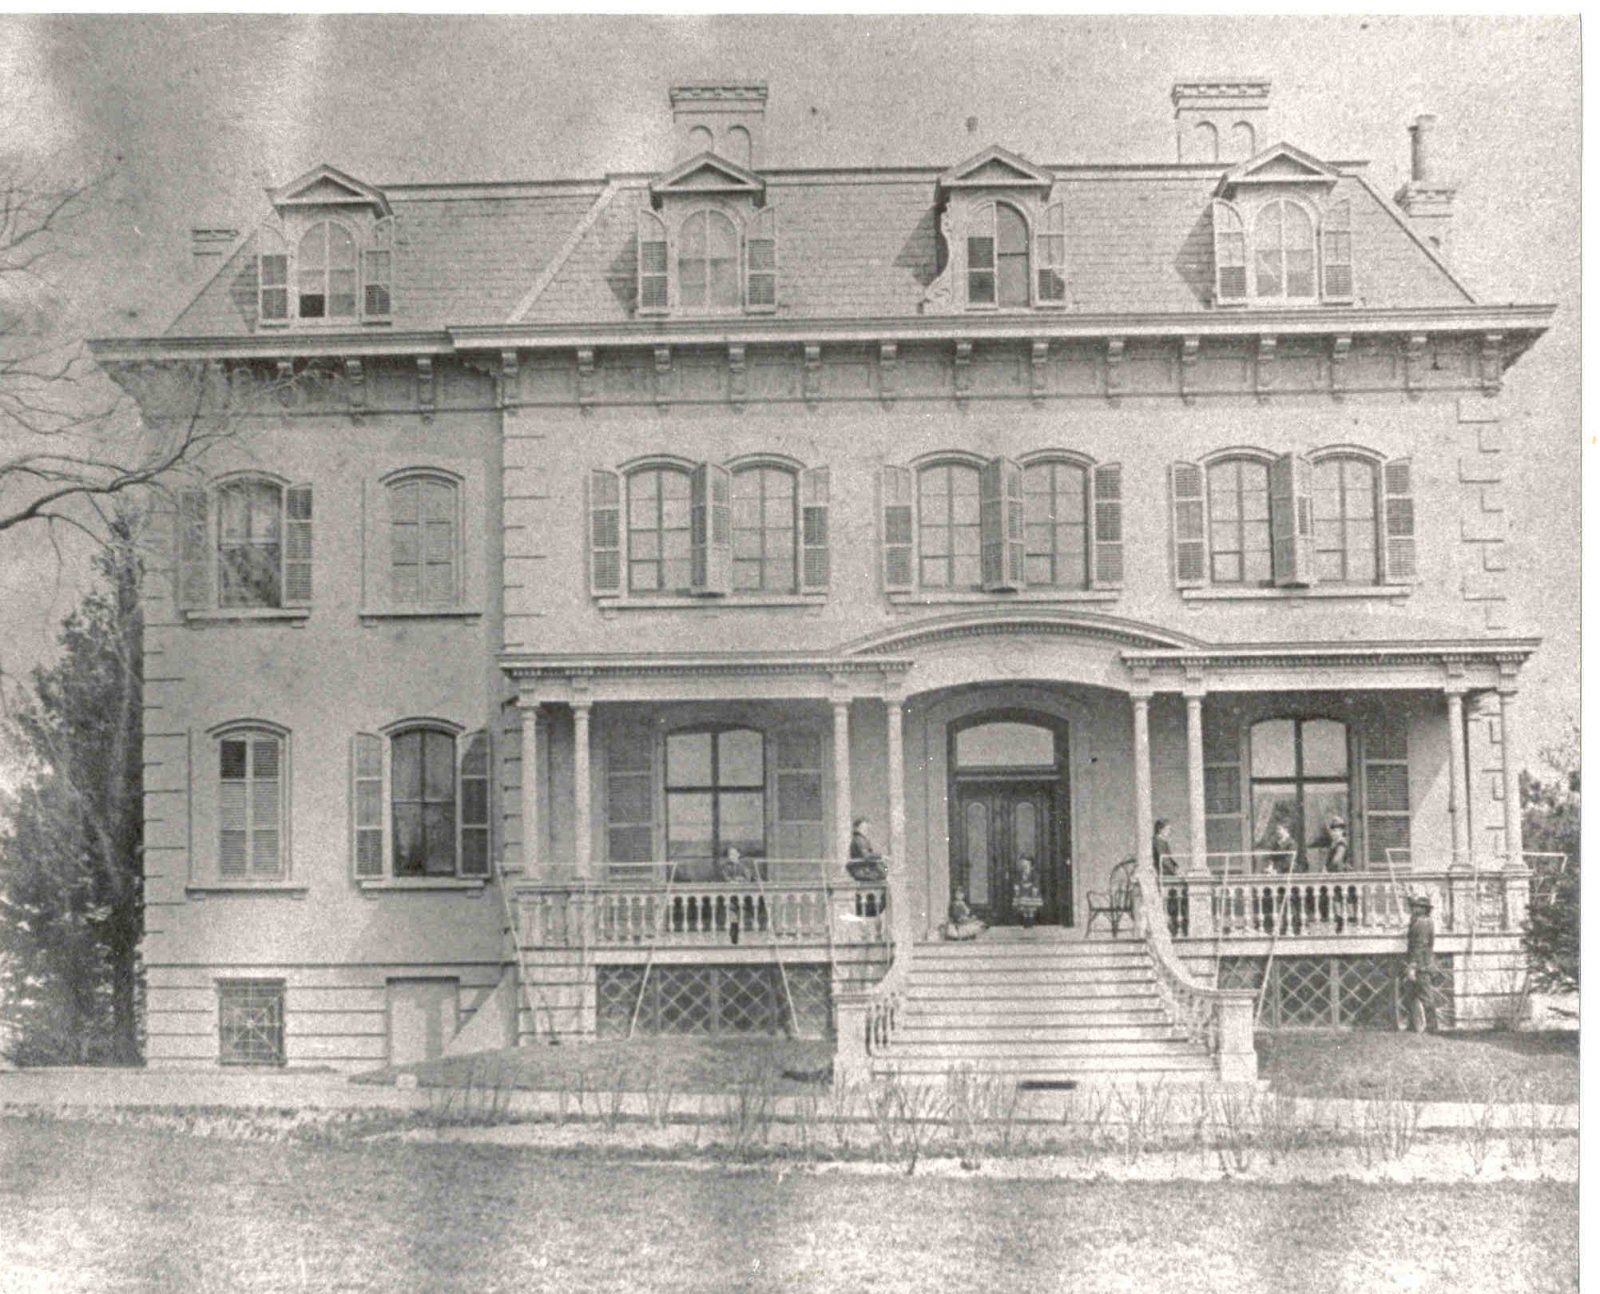 Herman A. Schleicher Mansion- One of the Few NYC Landmarks in College Point -123rd Street and 13th Avenue